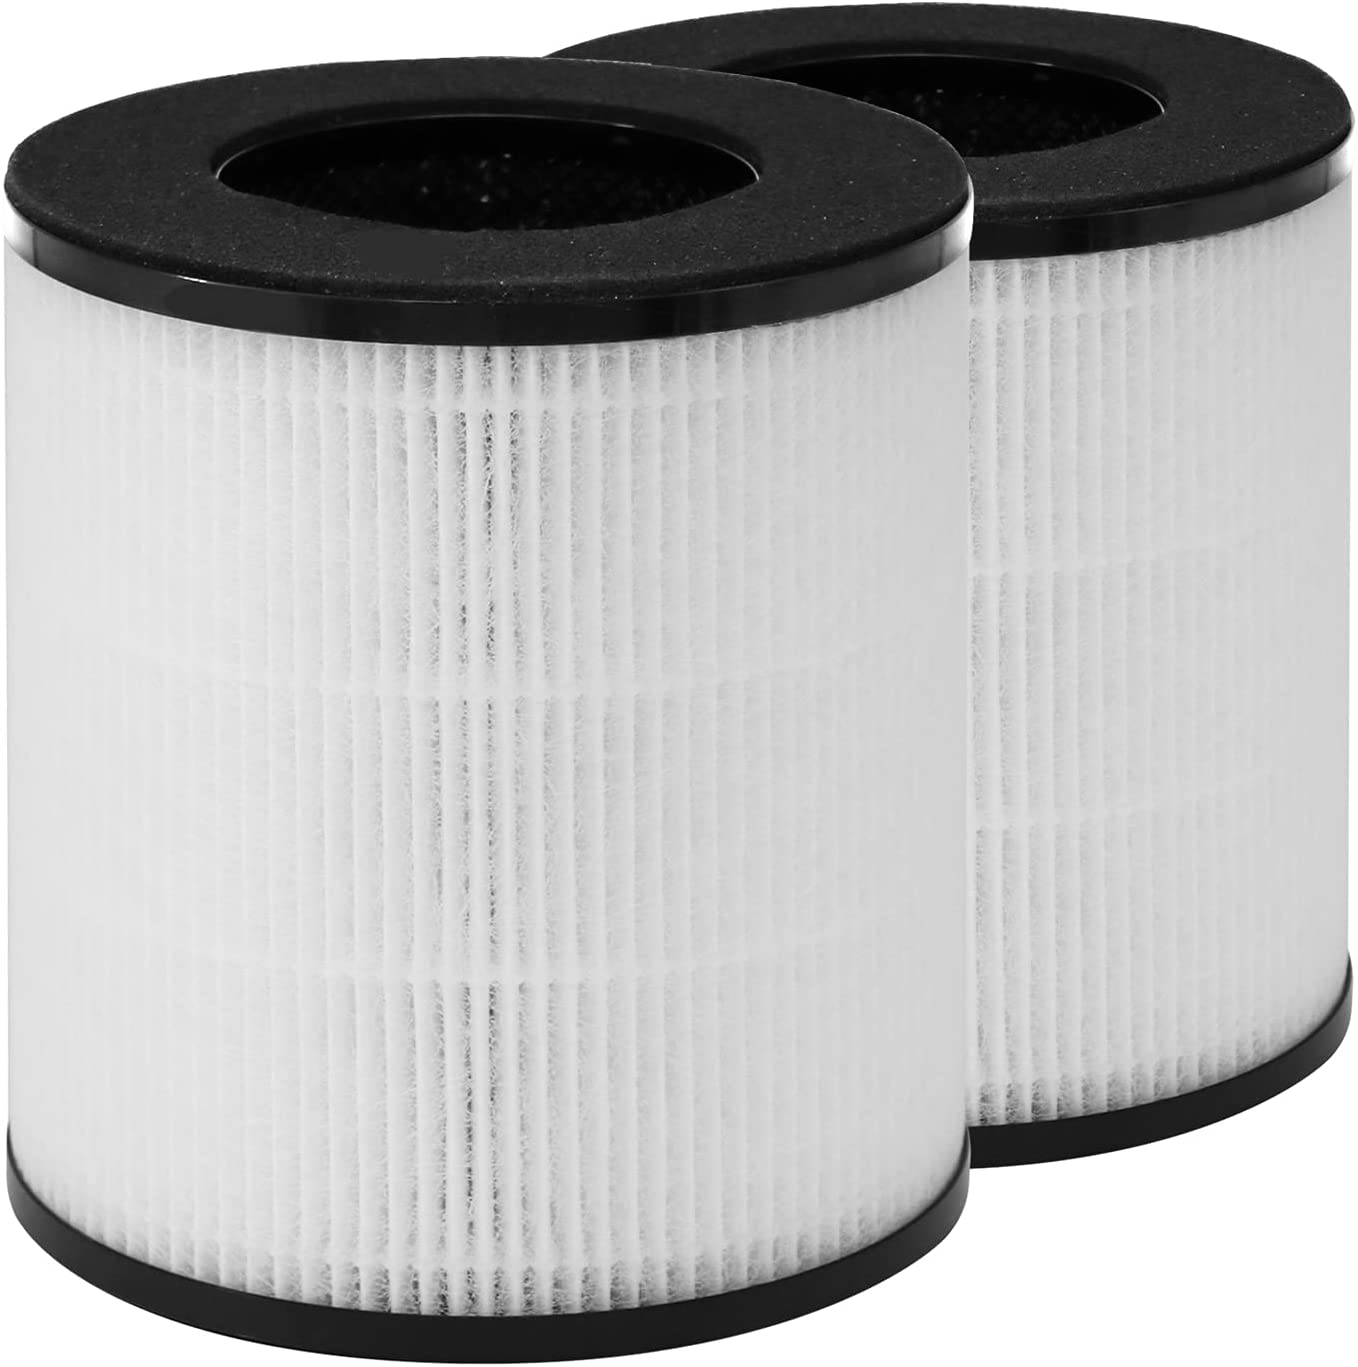 DAJDAH Luxury goods Renair All stores are sold Replacement Filter Tenergy Compatible with